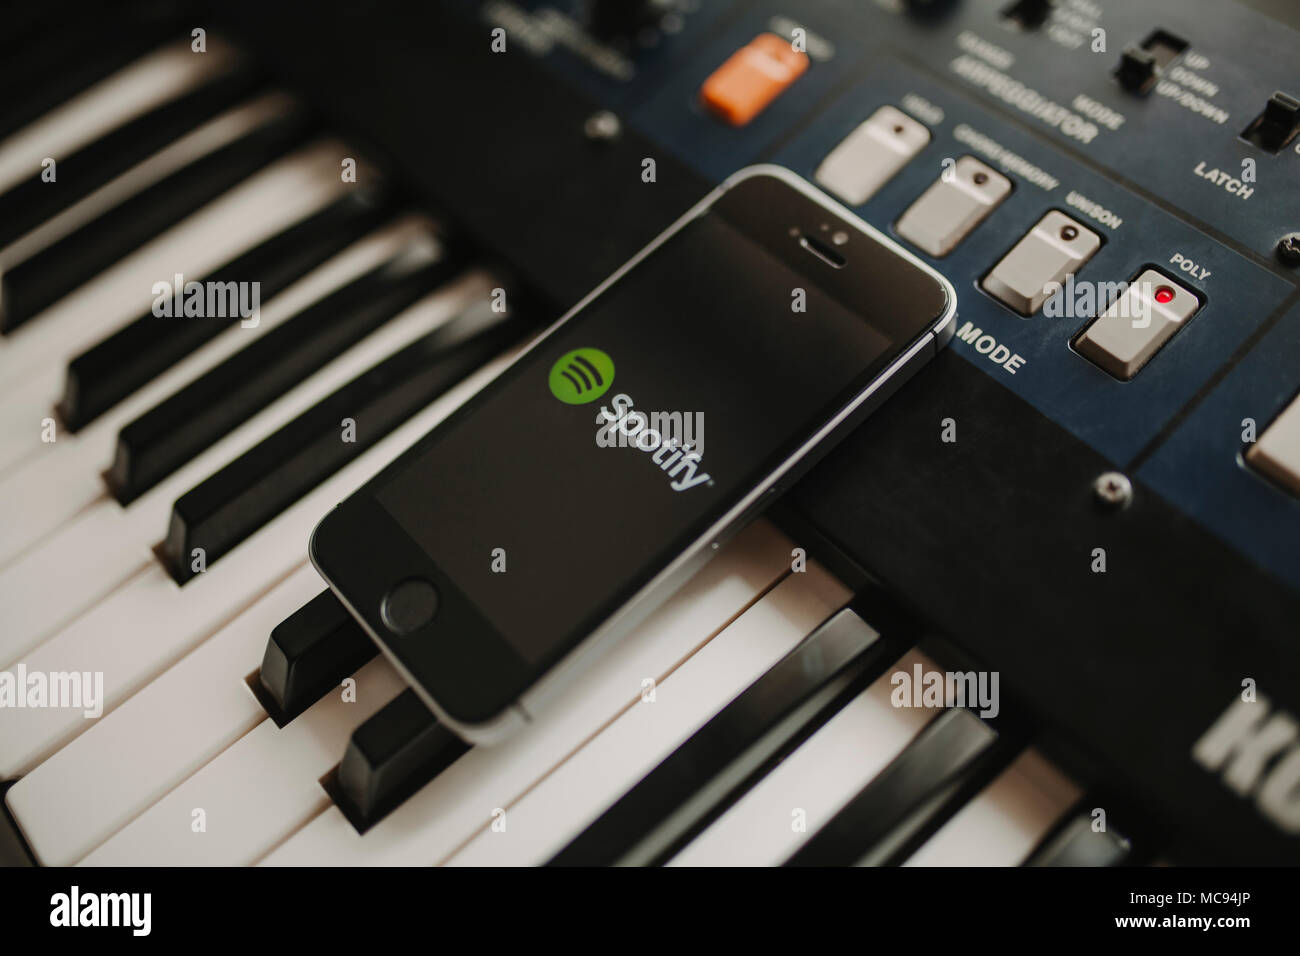 Mobile Piano Stock Photos & Mobile Piano Stock Images - Alamy